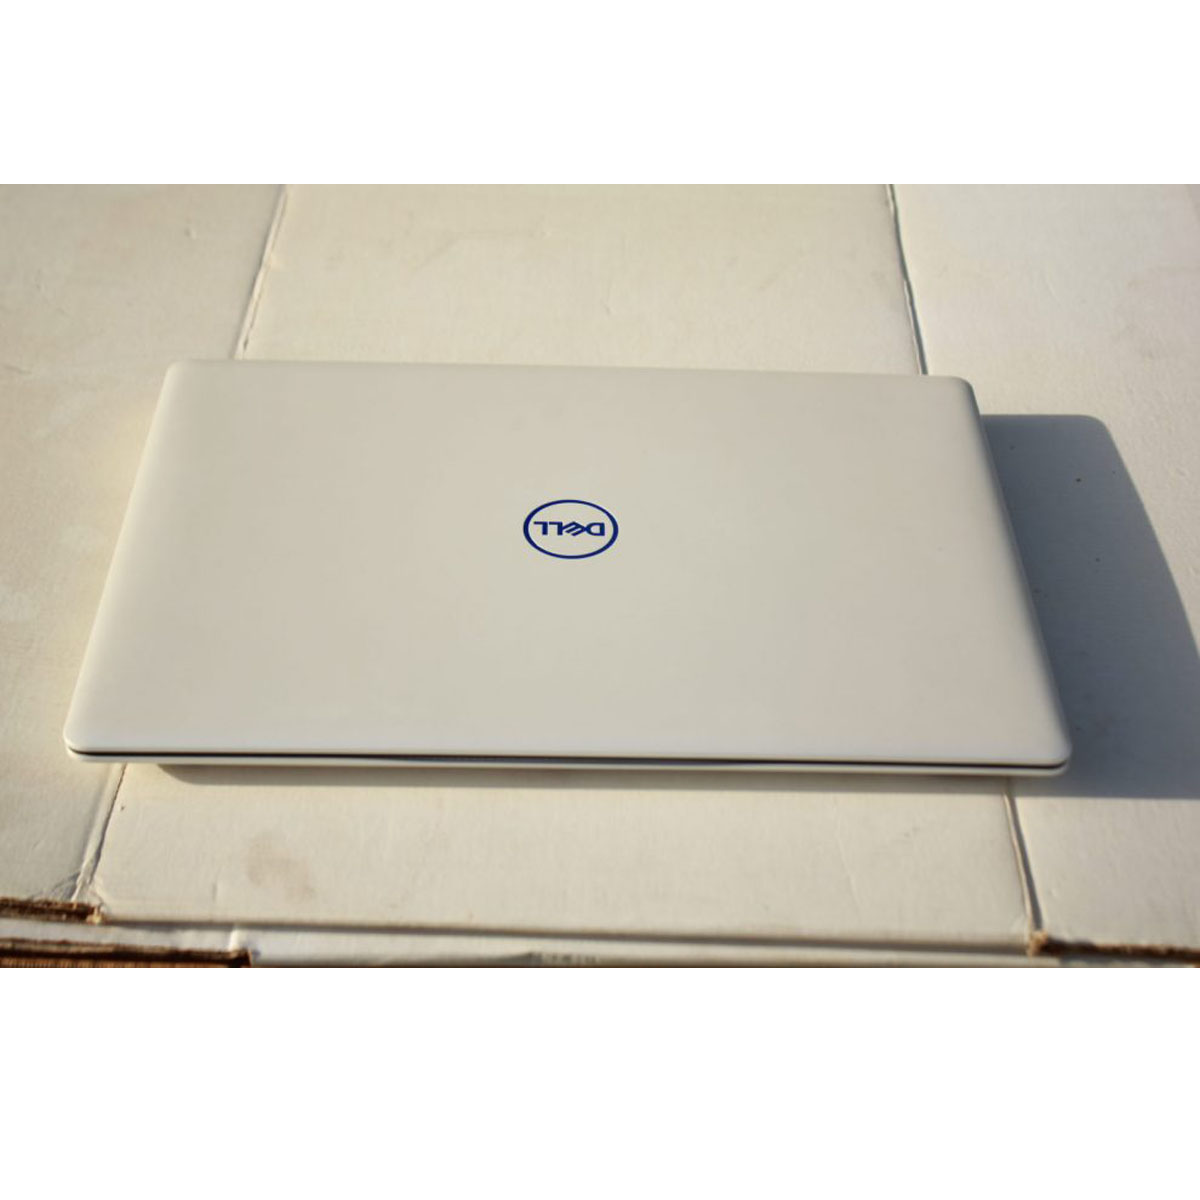 Dell 3579 G3 3579 Gaming Laptop Core i7 8th Generation (White)